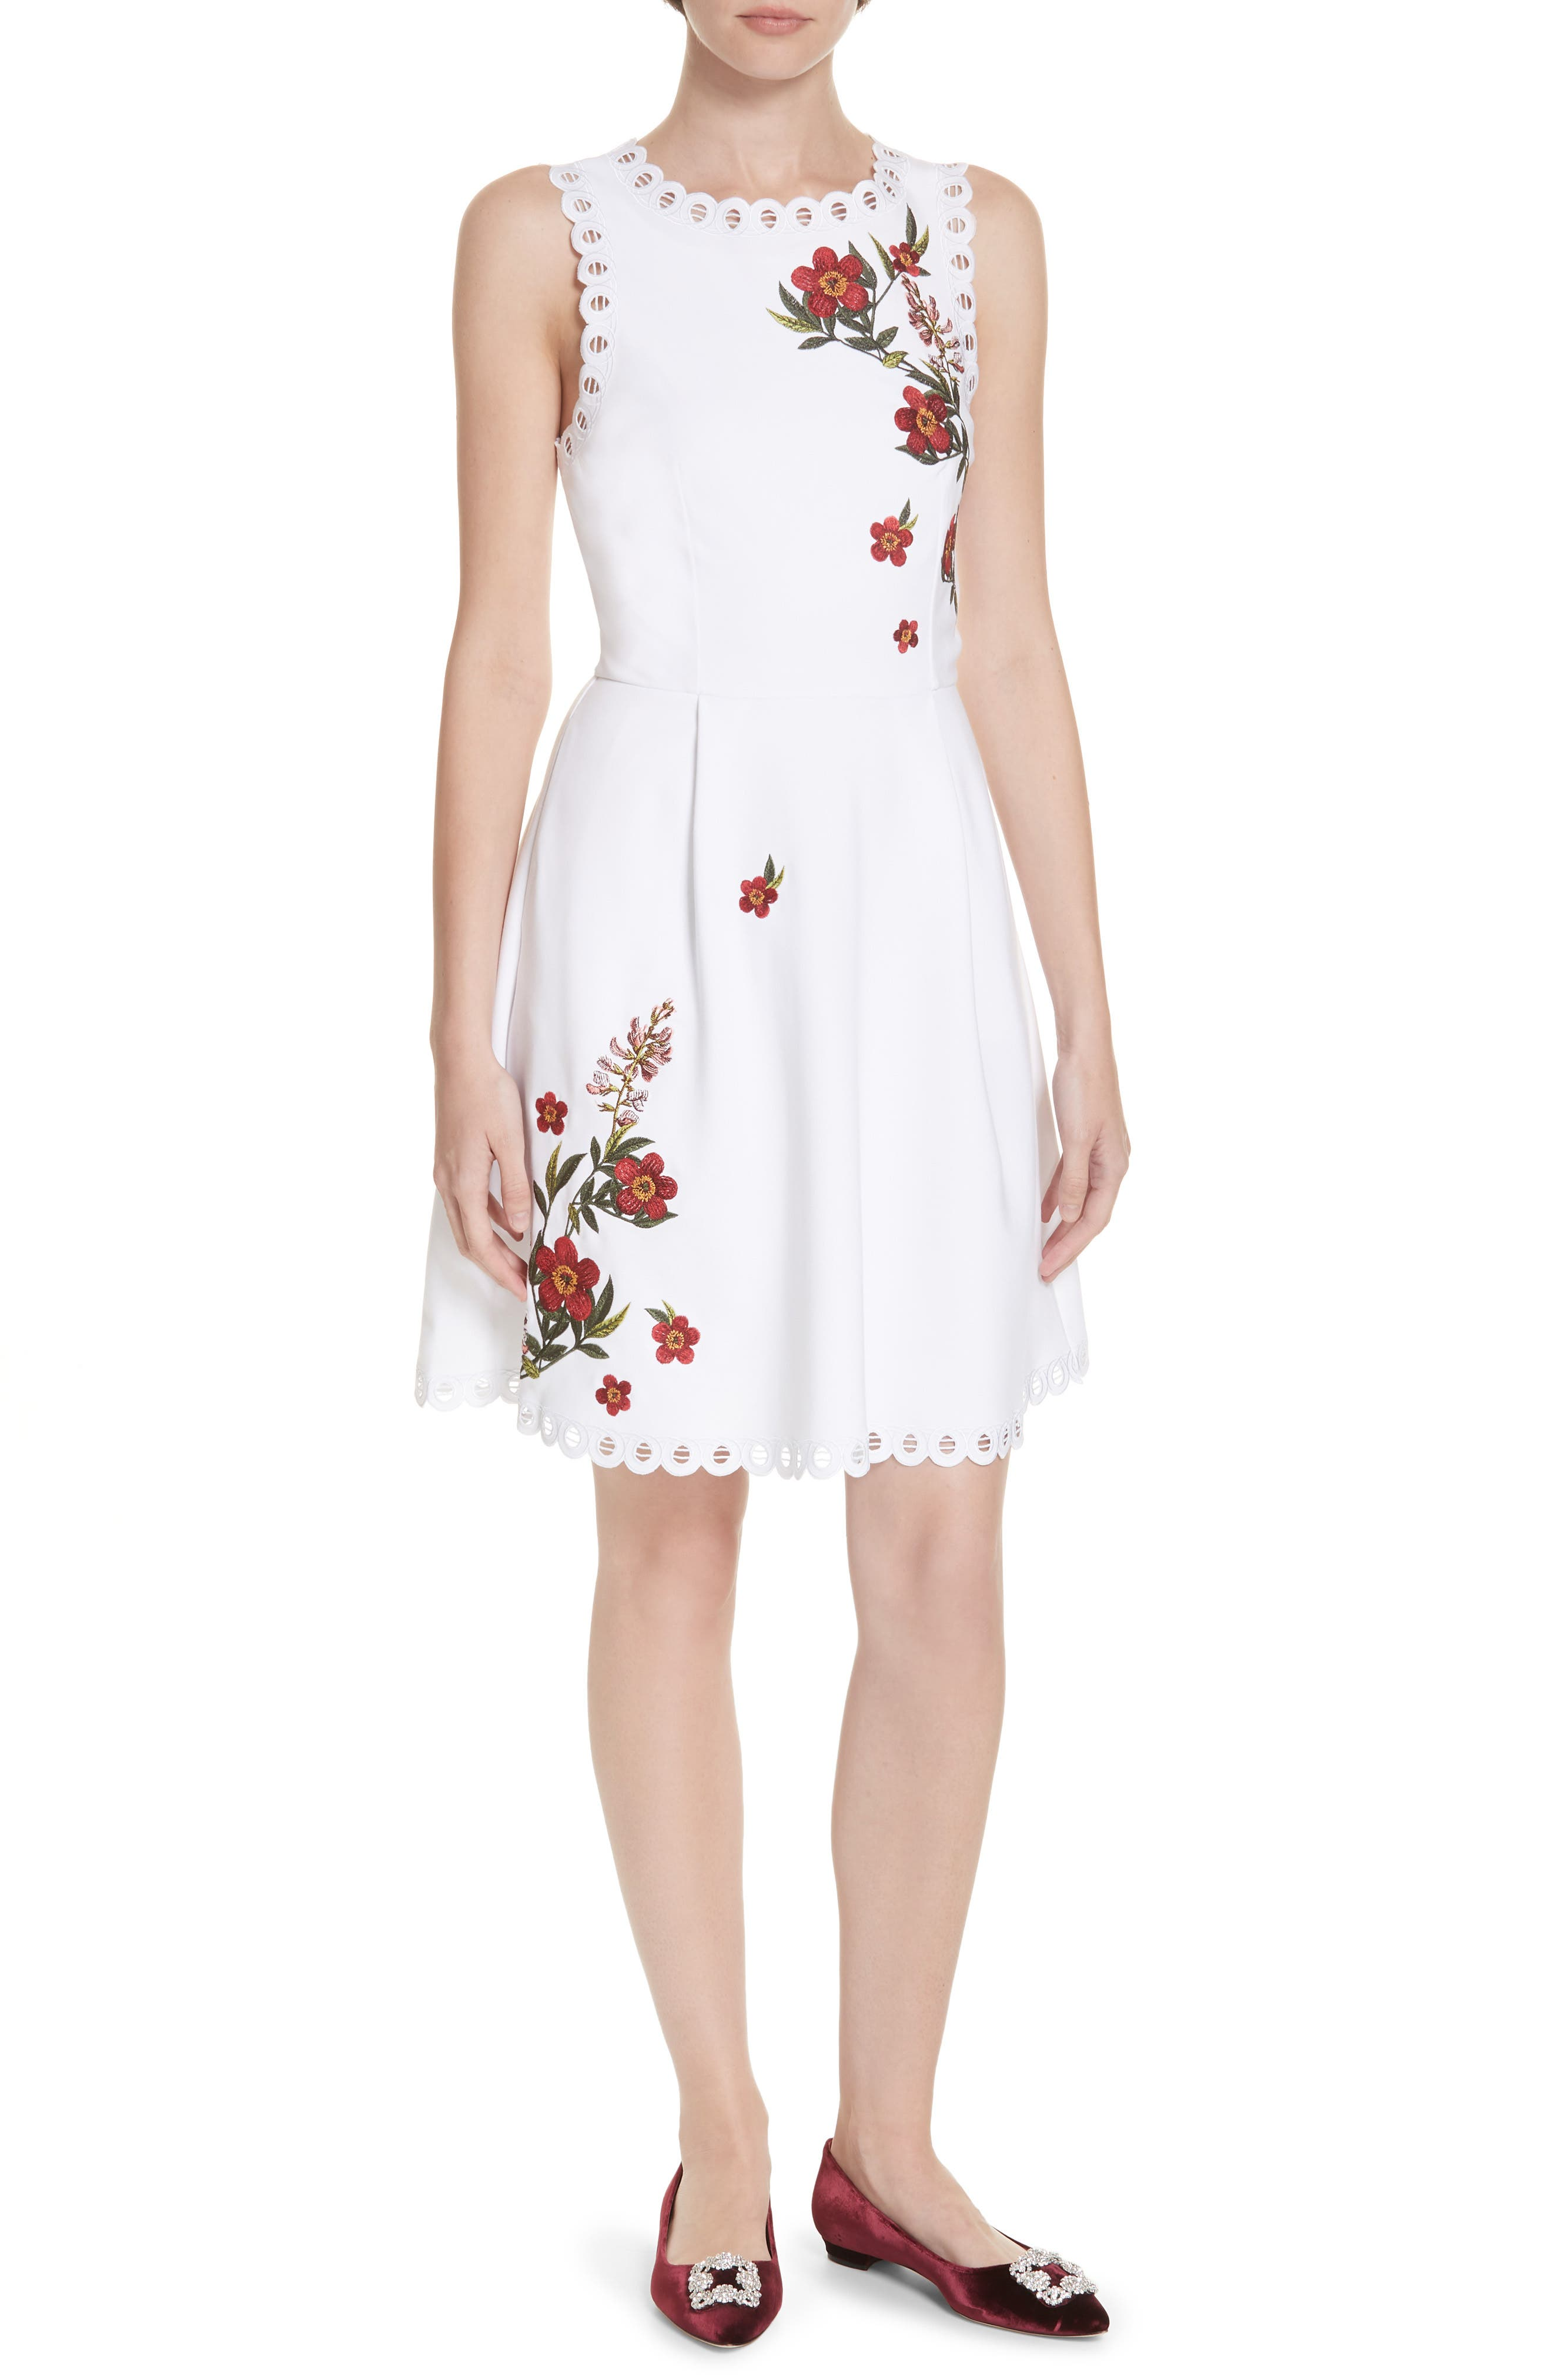 Kristil Kirstenbosch Skater Dress,                             Main thumbnail 1, color,                             WHITE